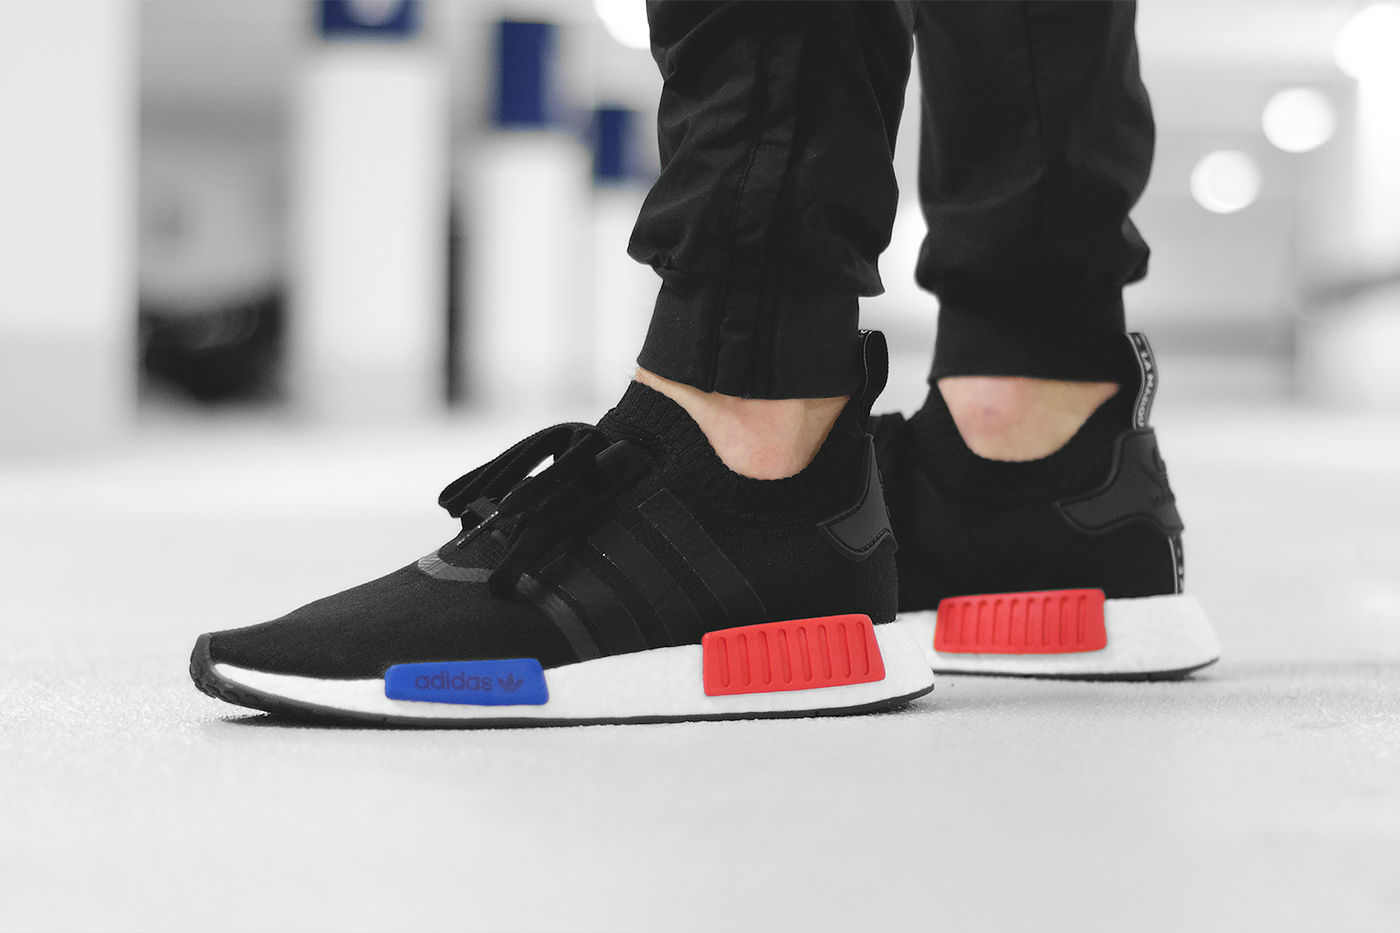 adidas NMD hace 17903 que adidas OG NMD regrese mañana | 8bc6f4d - allpoints.host